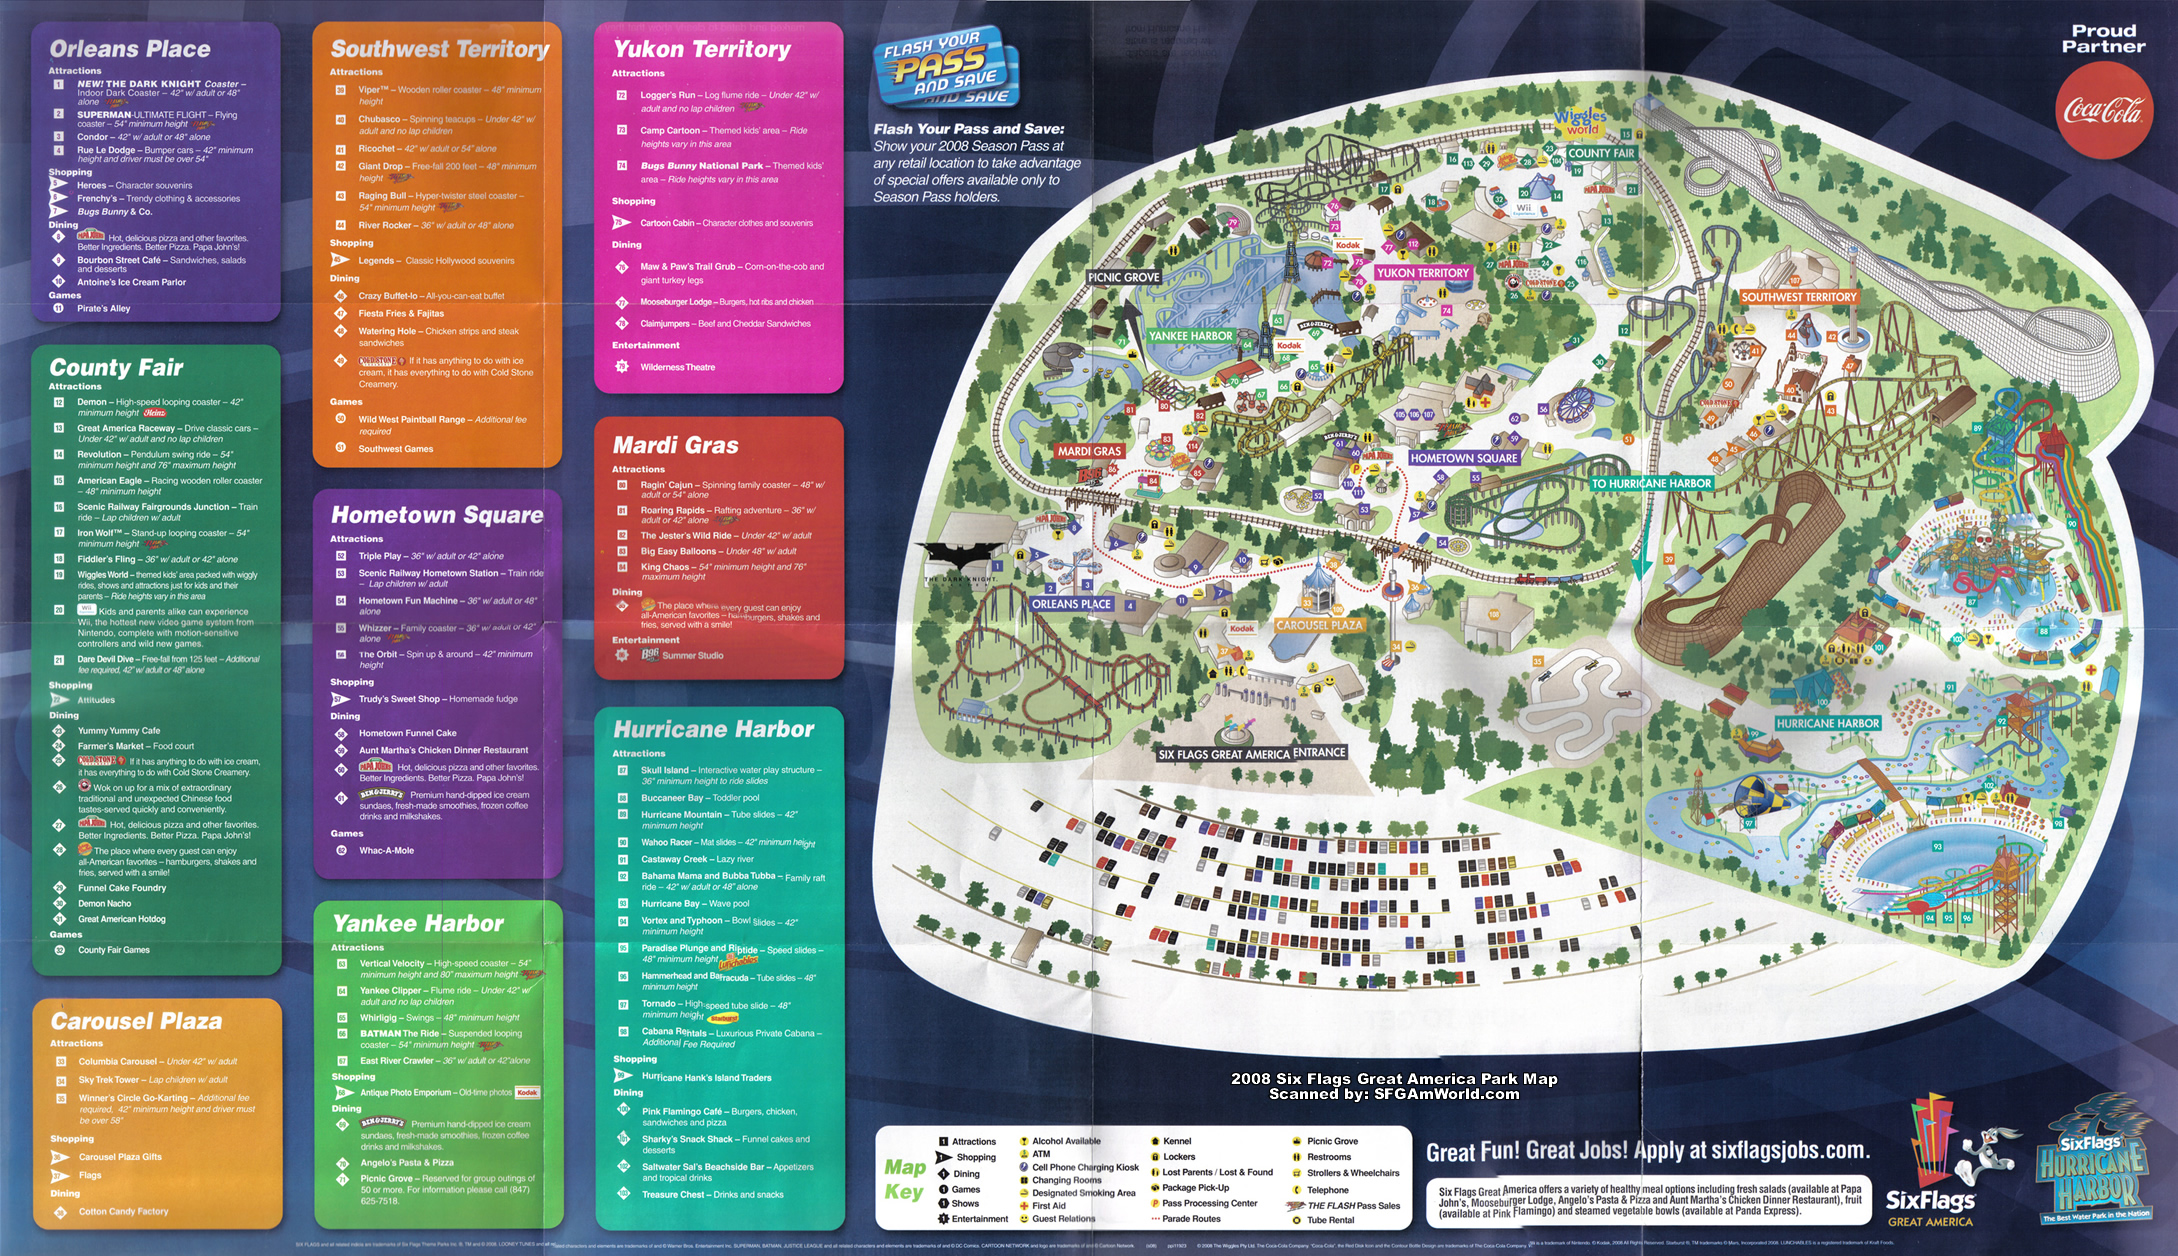 Six Flags New Orleans Park Map - Best Picture Of Flag Imagesco.Org on industrial map, shopping map, studio map, medieval village layout map, color map, table map, street map, residential map, night map, traditional map, tropical jungle map, general map, security map, office map, high resolution map, metal map, nature map, fashion map, daytime map, business map,